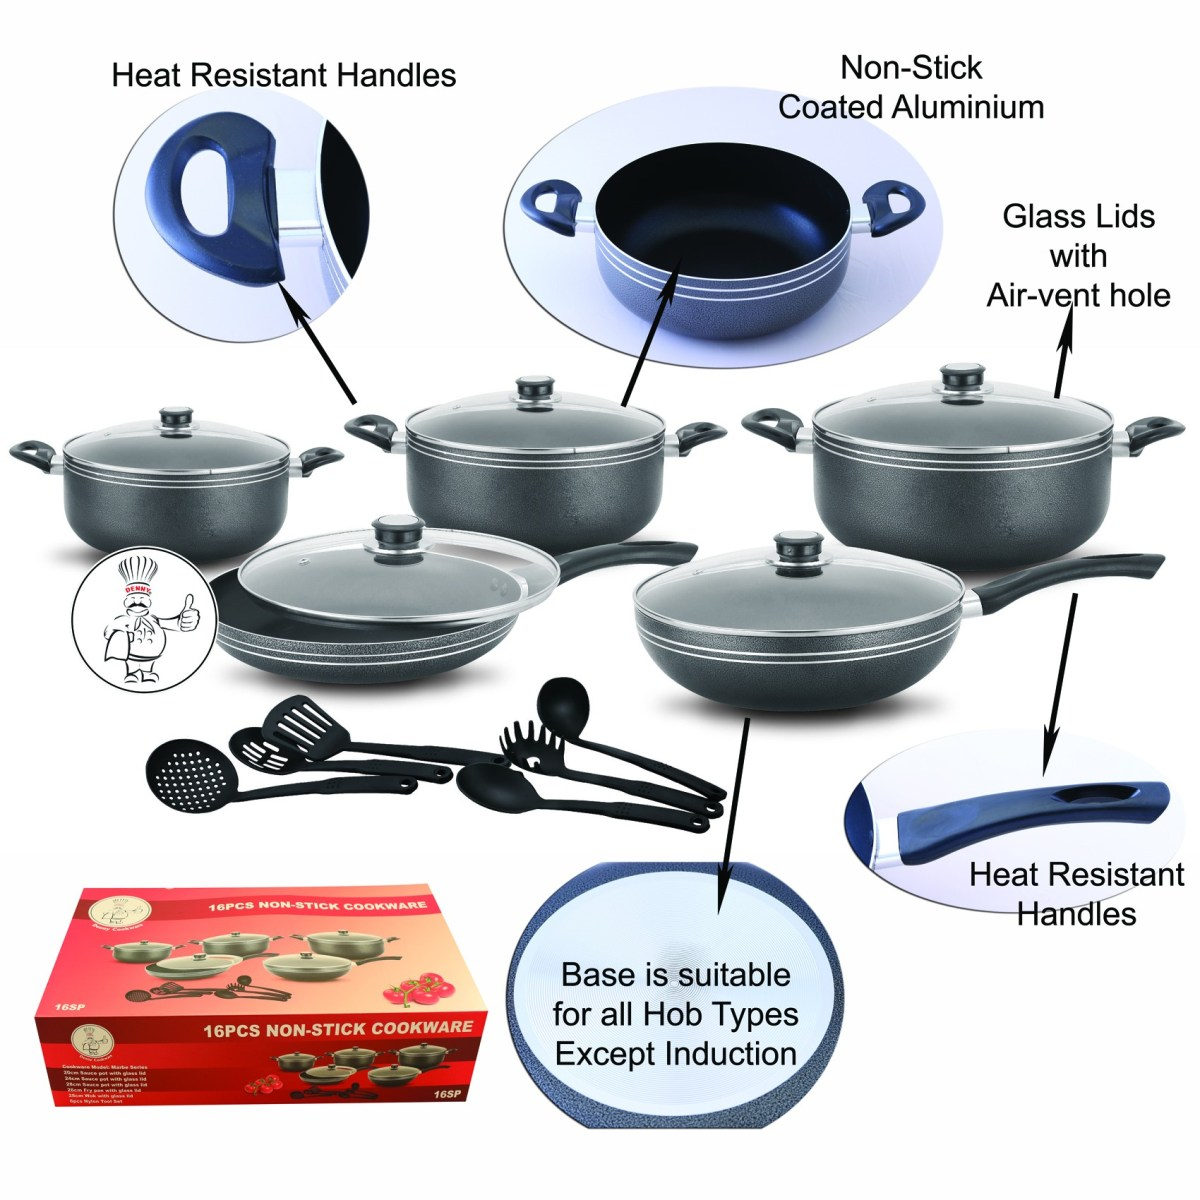 16pcs-Non-Stick Cookware Set